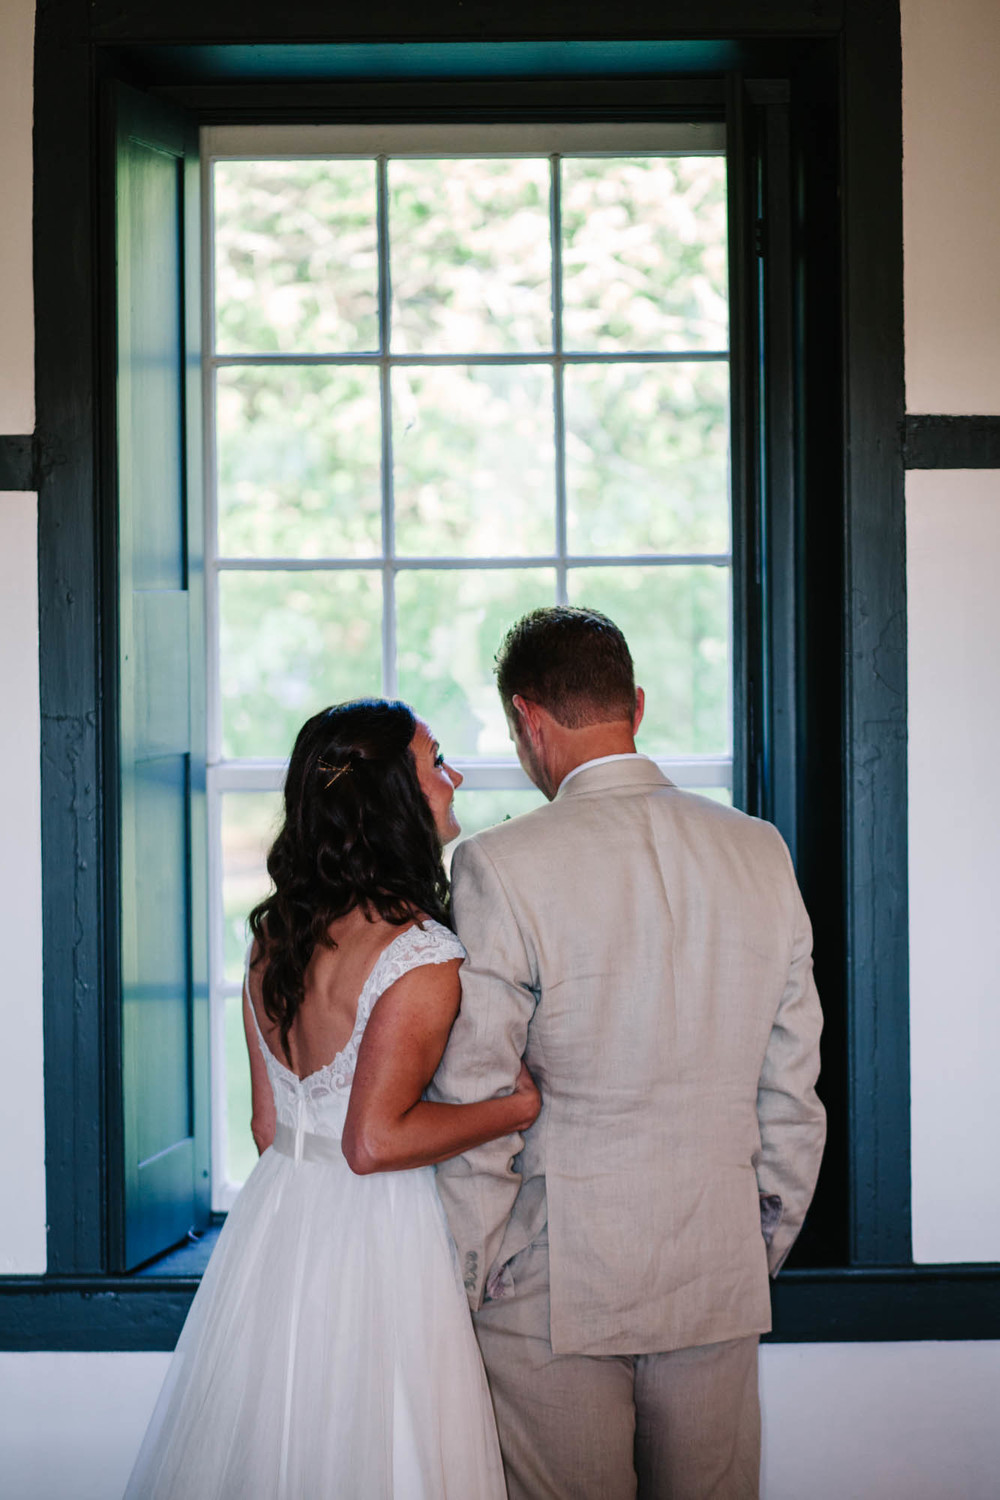 shakervillagewedding-94.jpg